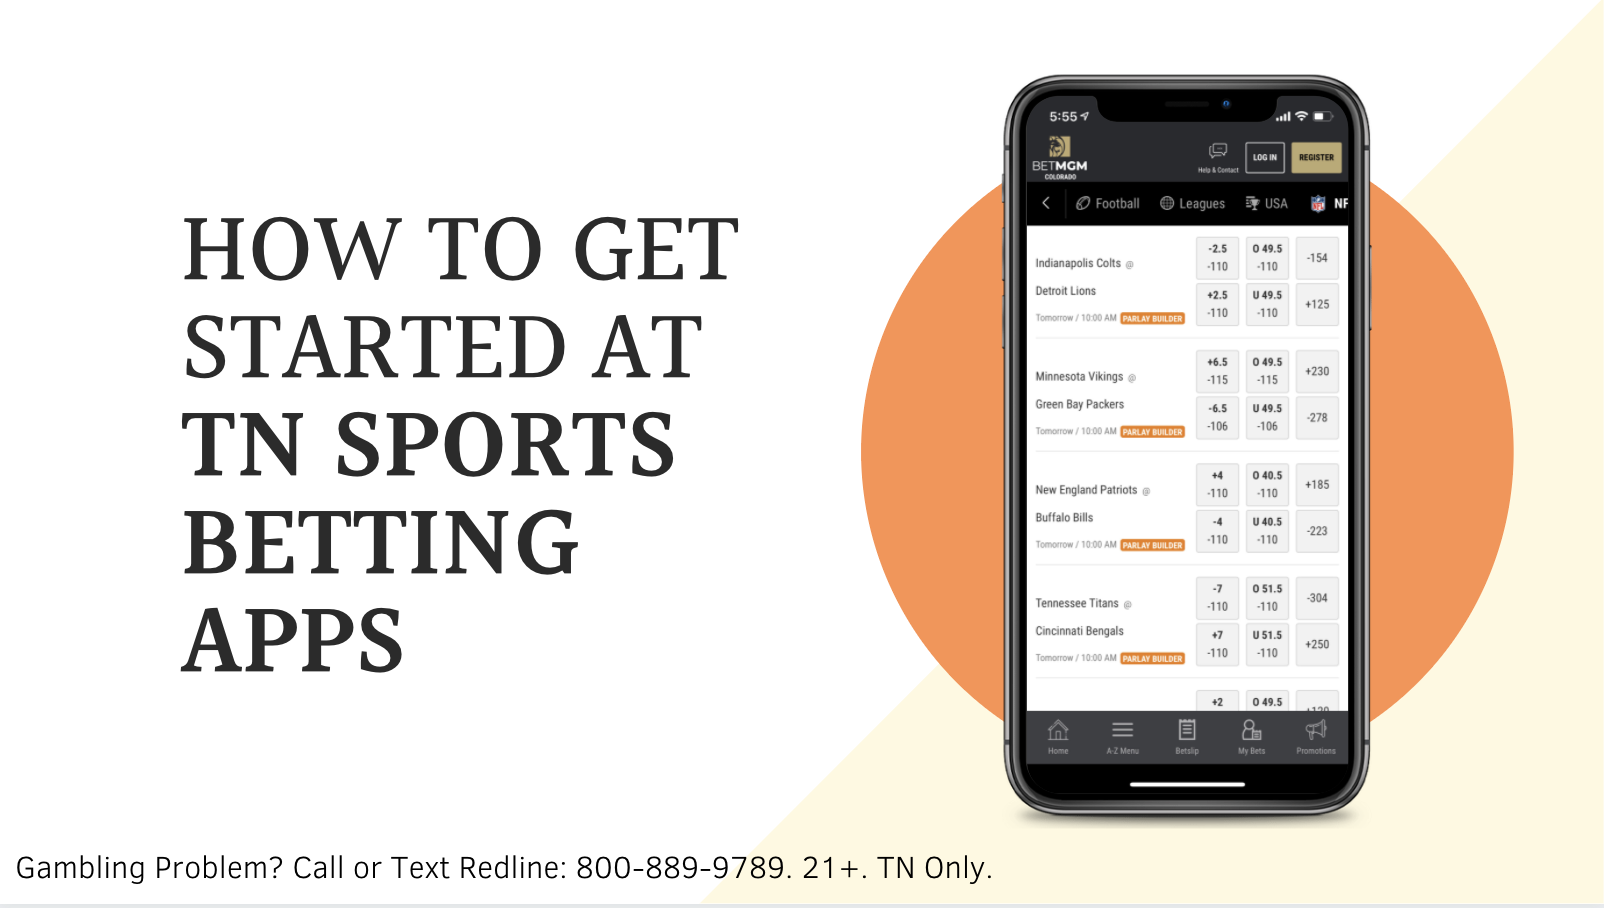 Premier sports betting bet and win verification of deposit dodgers betting line